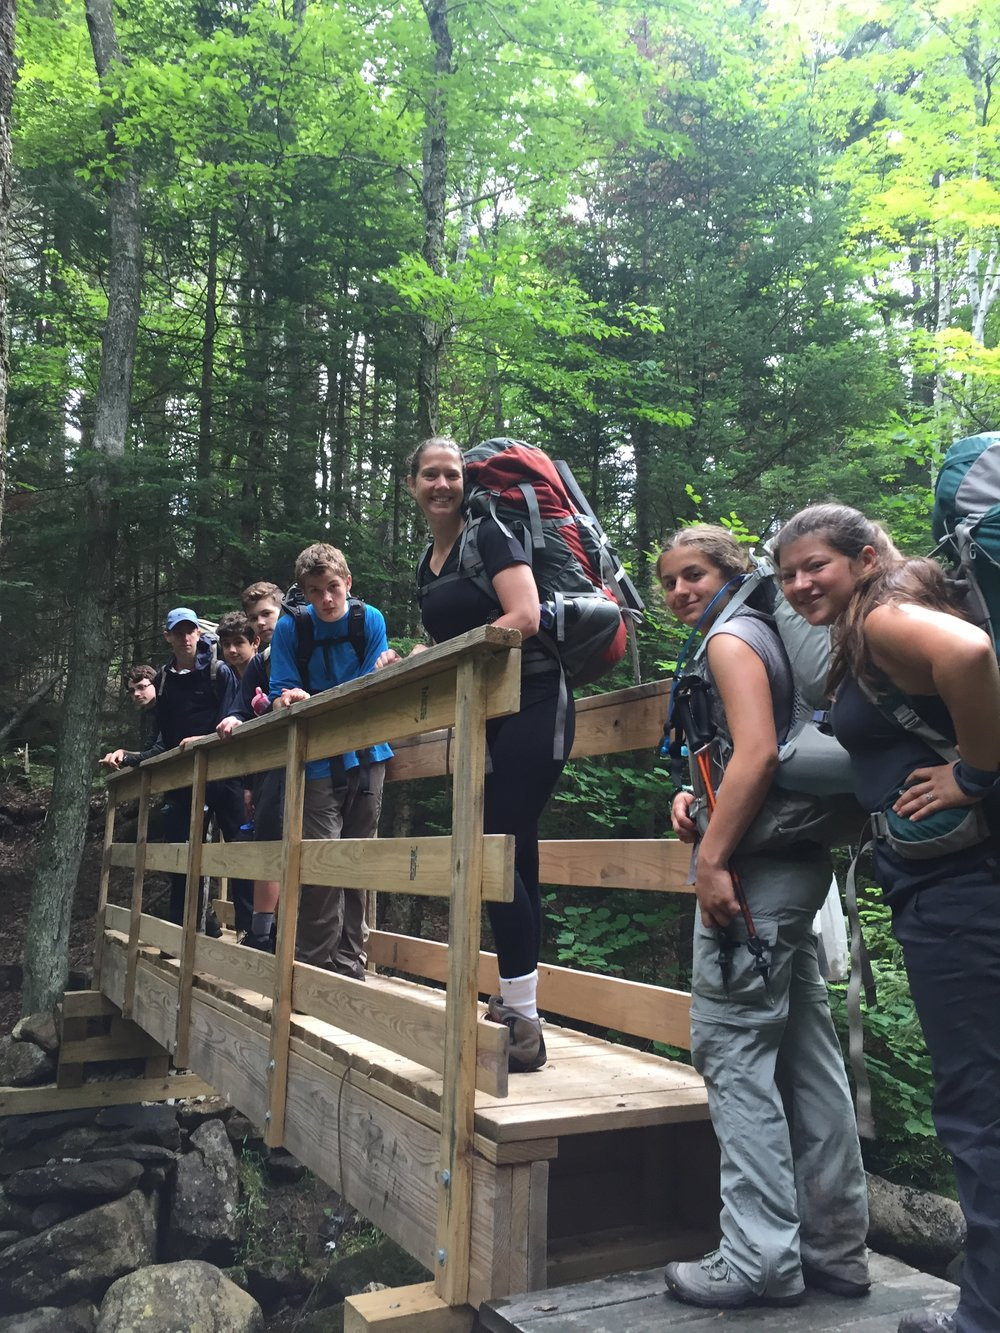 Intro to backpacking Monadnock-Sunapee Greenway in N.H. 2017